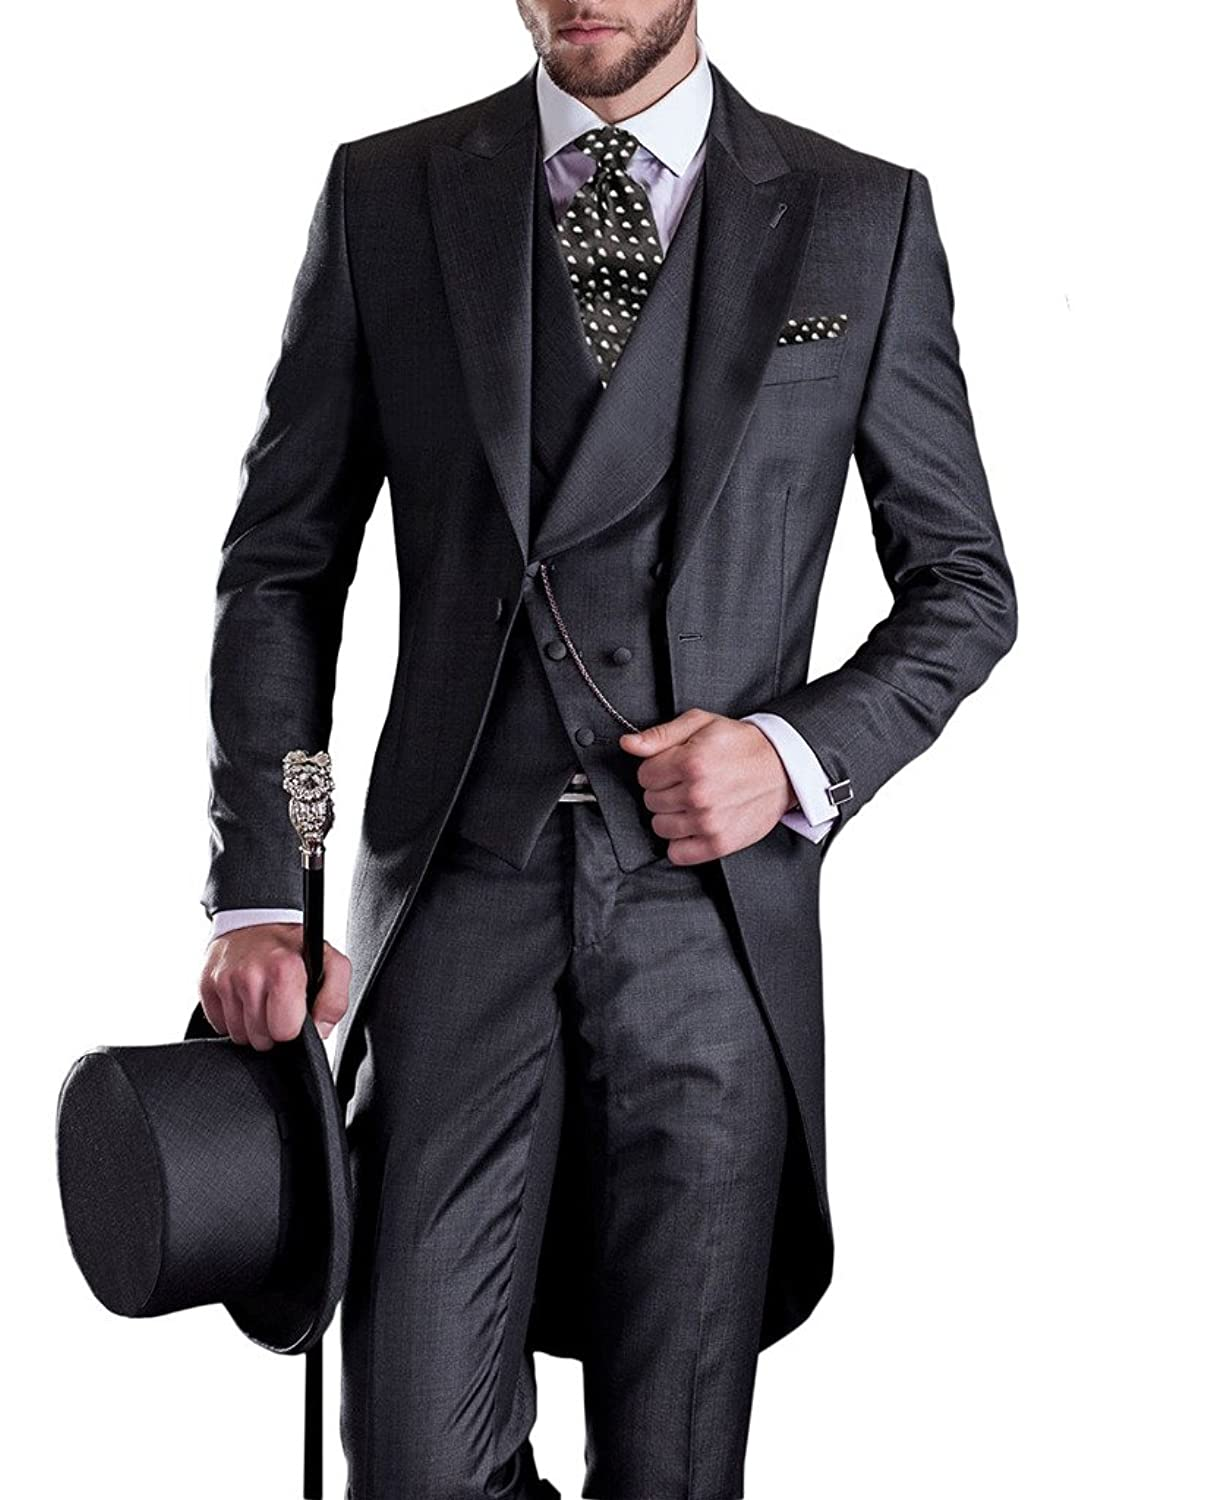 Men's Steampunk Jackets, Coats & Suits Mens Tail Tuxedo 3pc Tailcoat suit in Gray Suit Jacket Vest Suit Pants GEORGE BRIDE Premium $79.00 AT vintagedancer.com